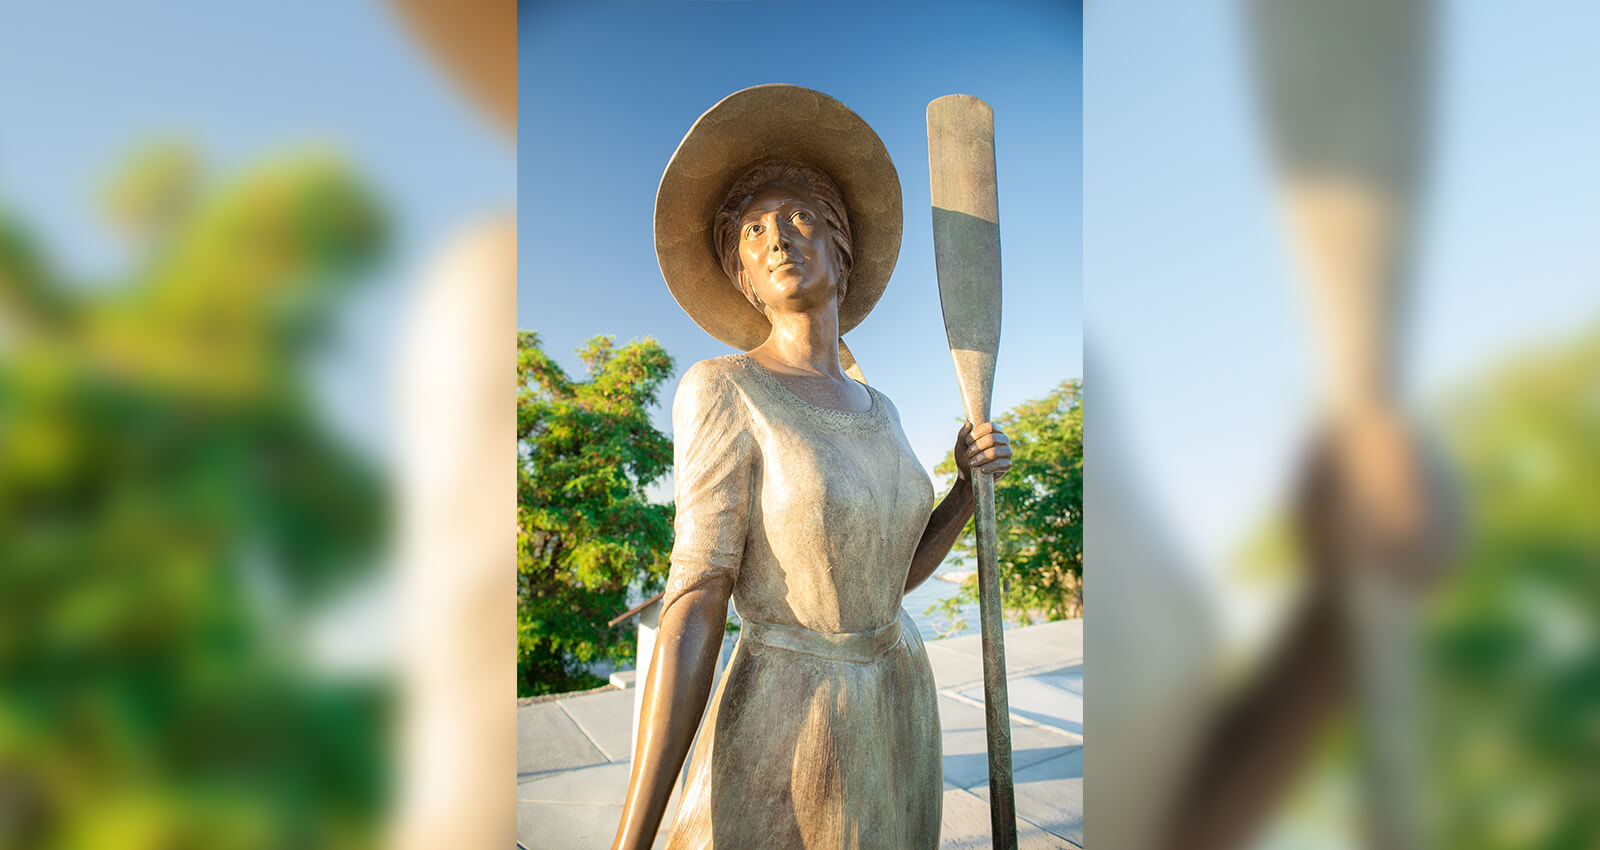 Call of the River young girl with oar sculpture.